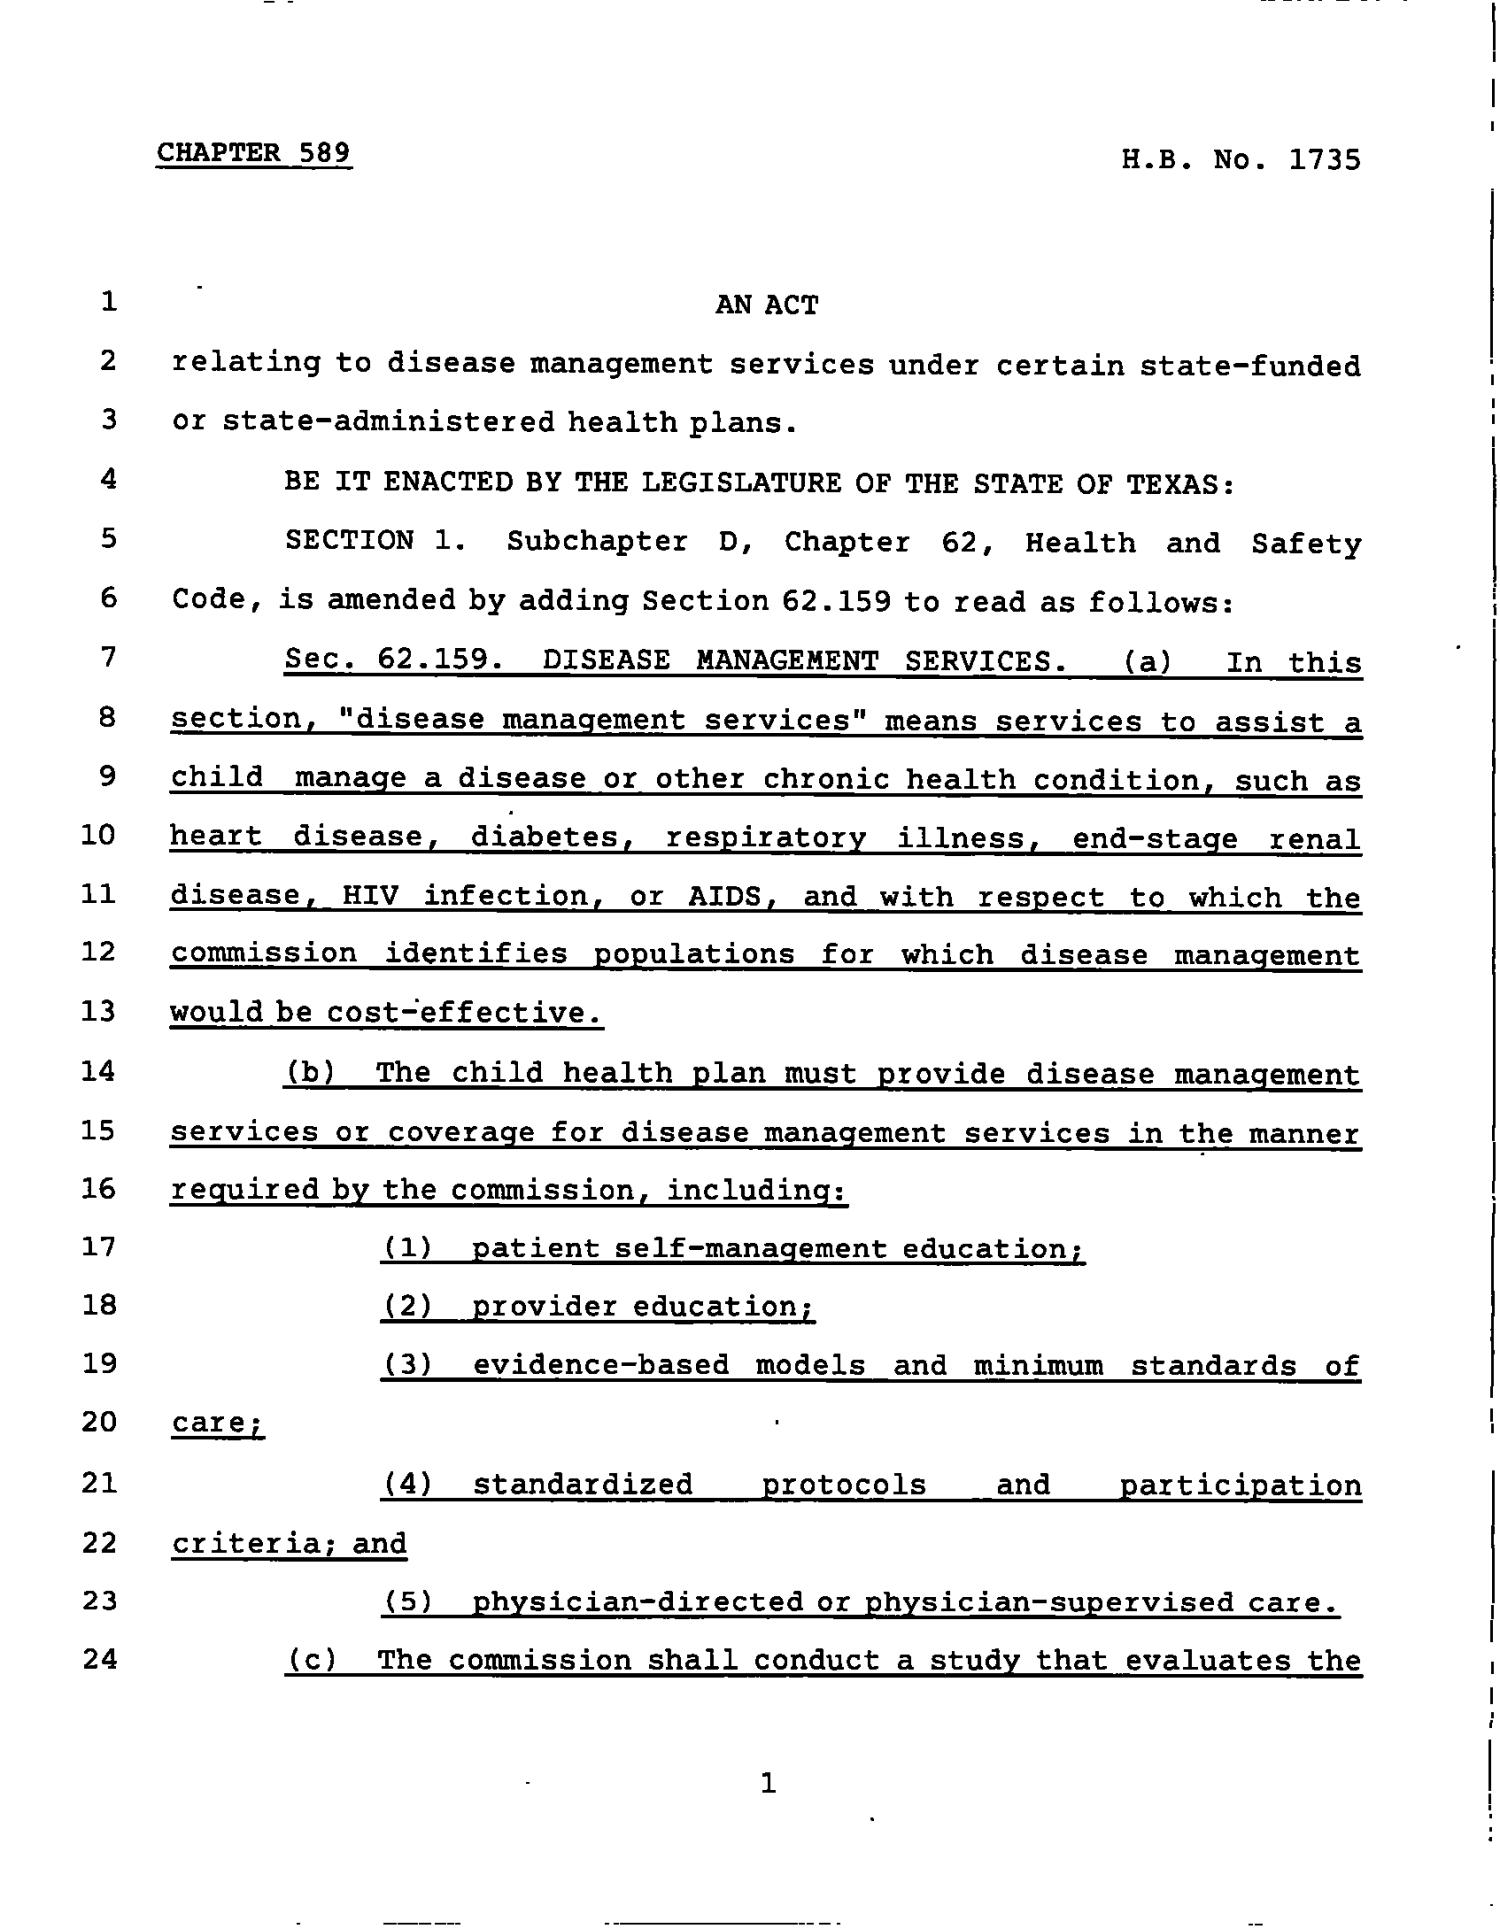 78th Texas Legislature, Regular Session, House Bill 1735, Chapter 589                                                                                                      [Sequence #]: 1 of 11